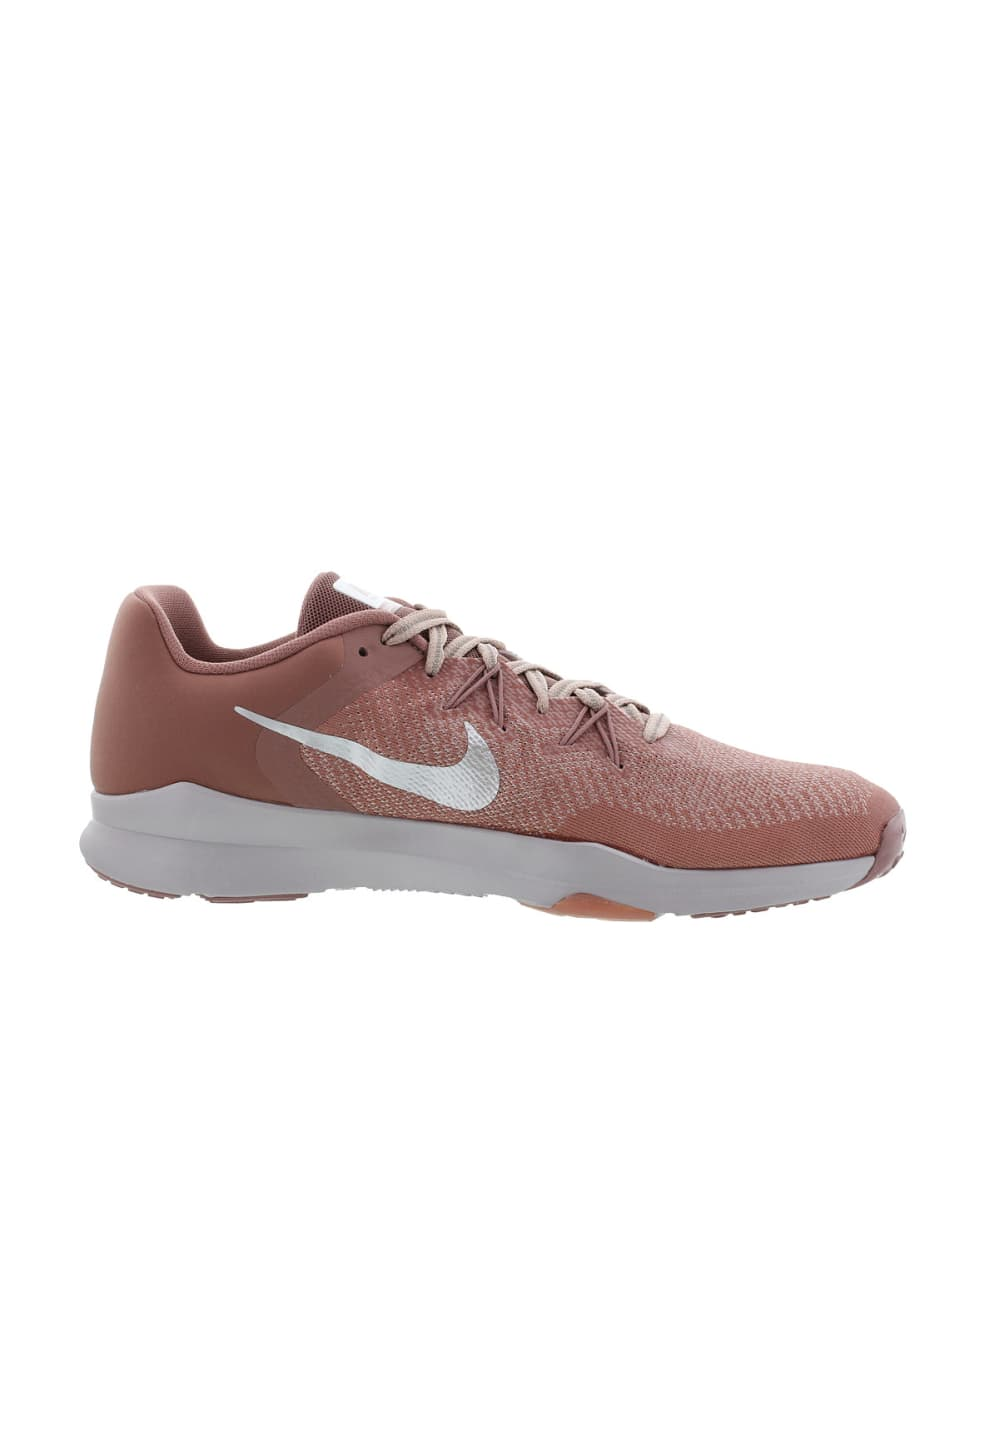 9943cd385c688 Next. -60%. Nike. Zoom Condition Tr 2 Premium - Fitness shoes for Women